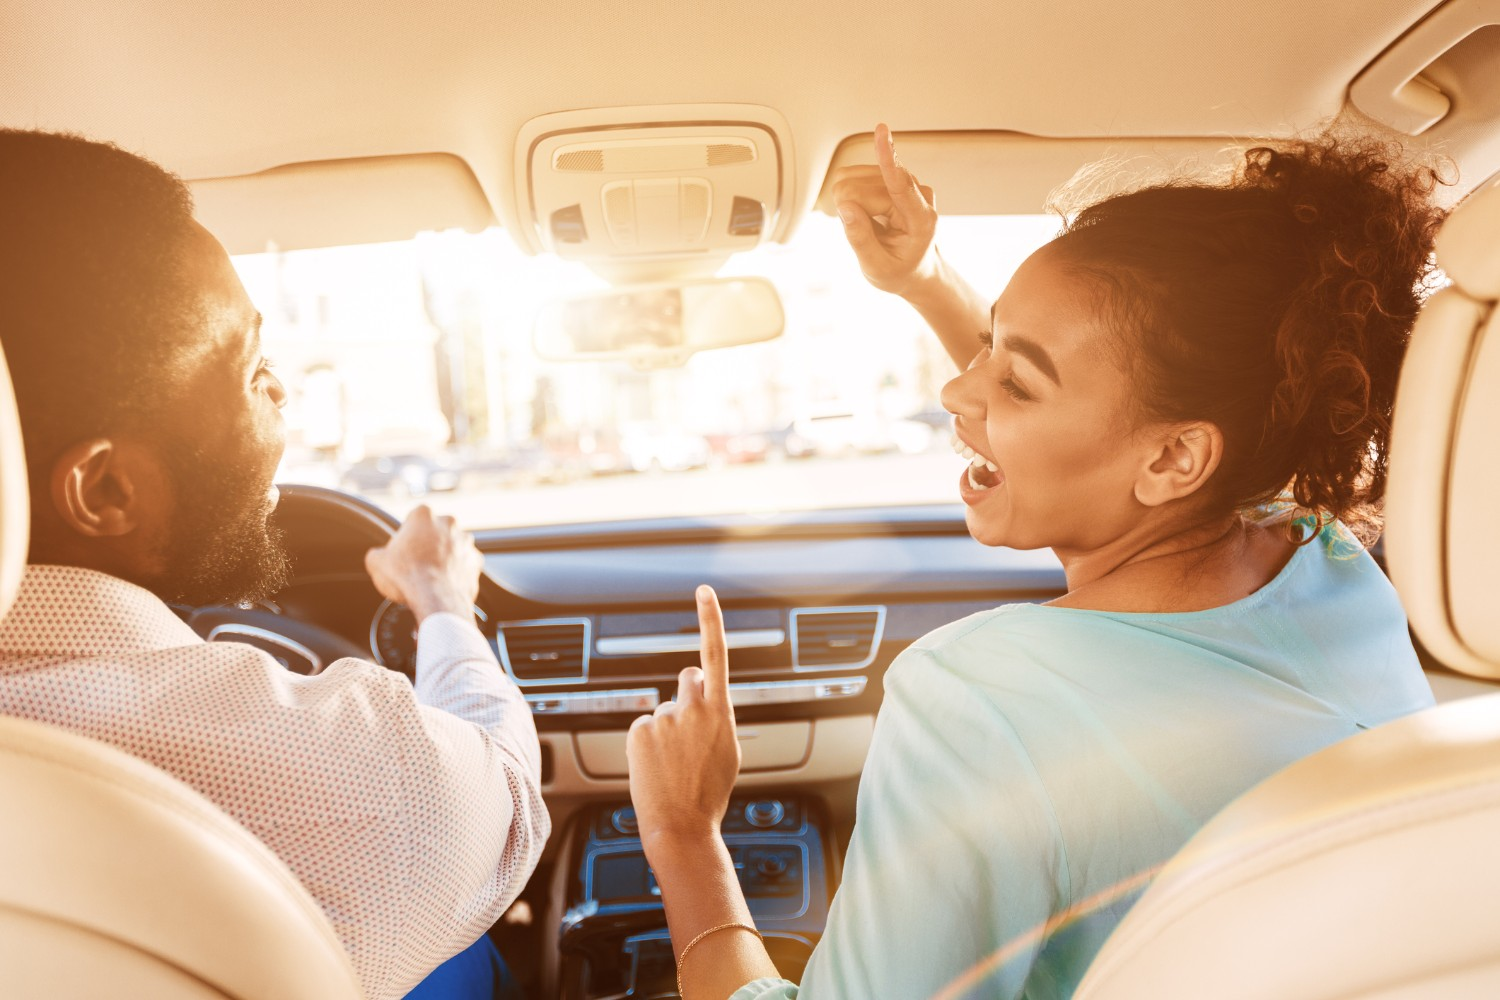 Couple enjoying karaoke in their car while on a road trip from Indianapolis to Zionsville, IN